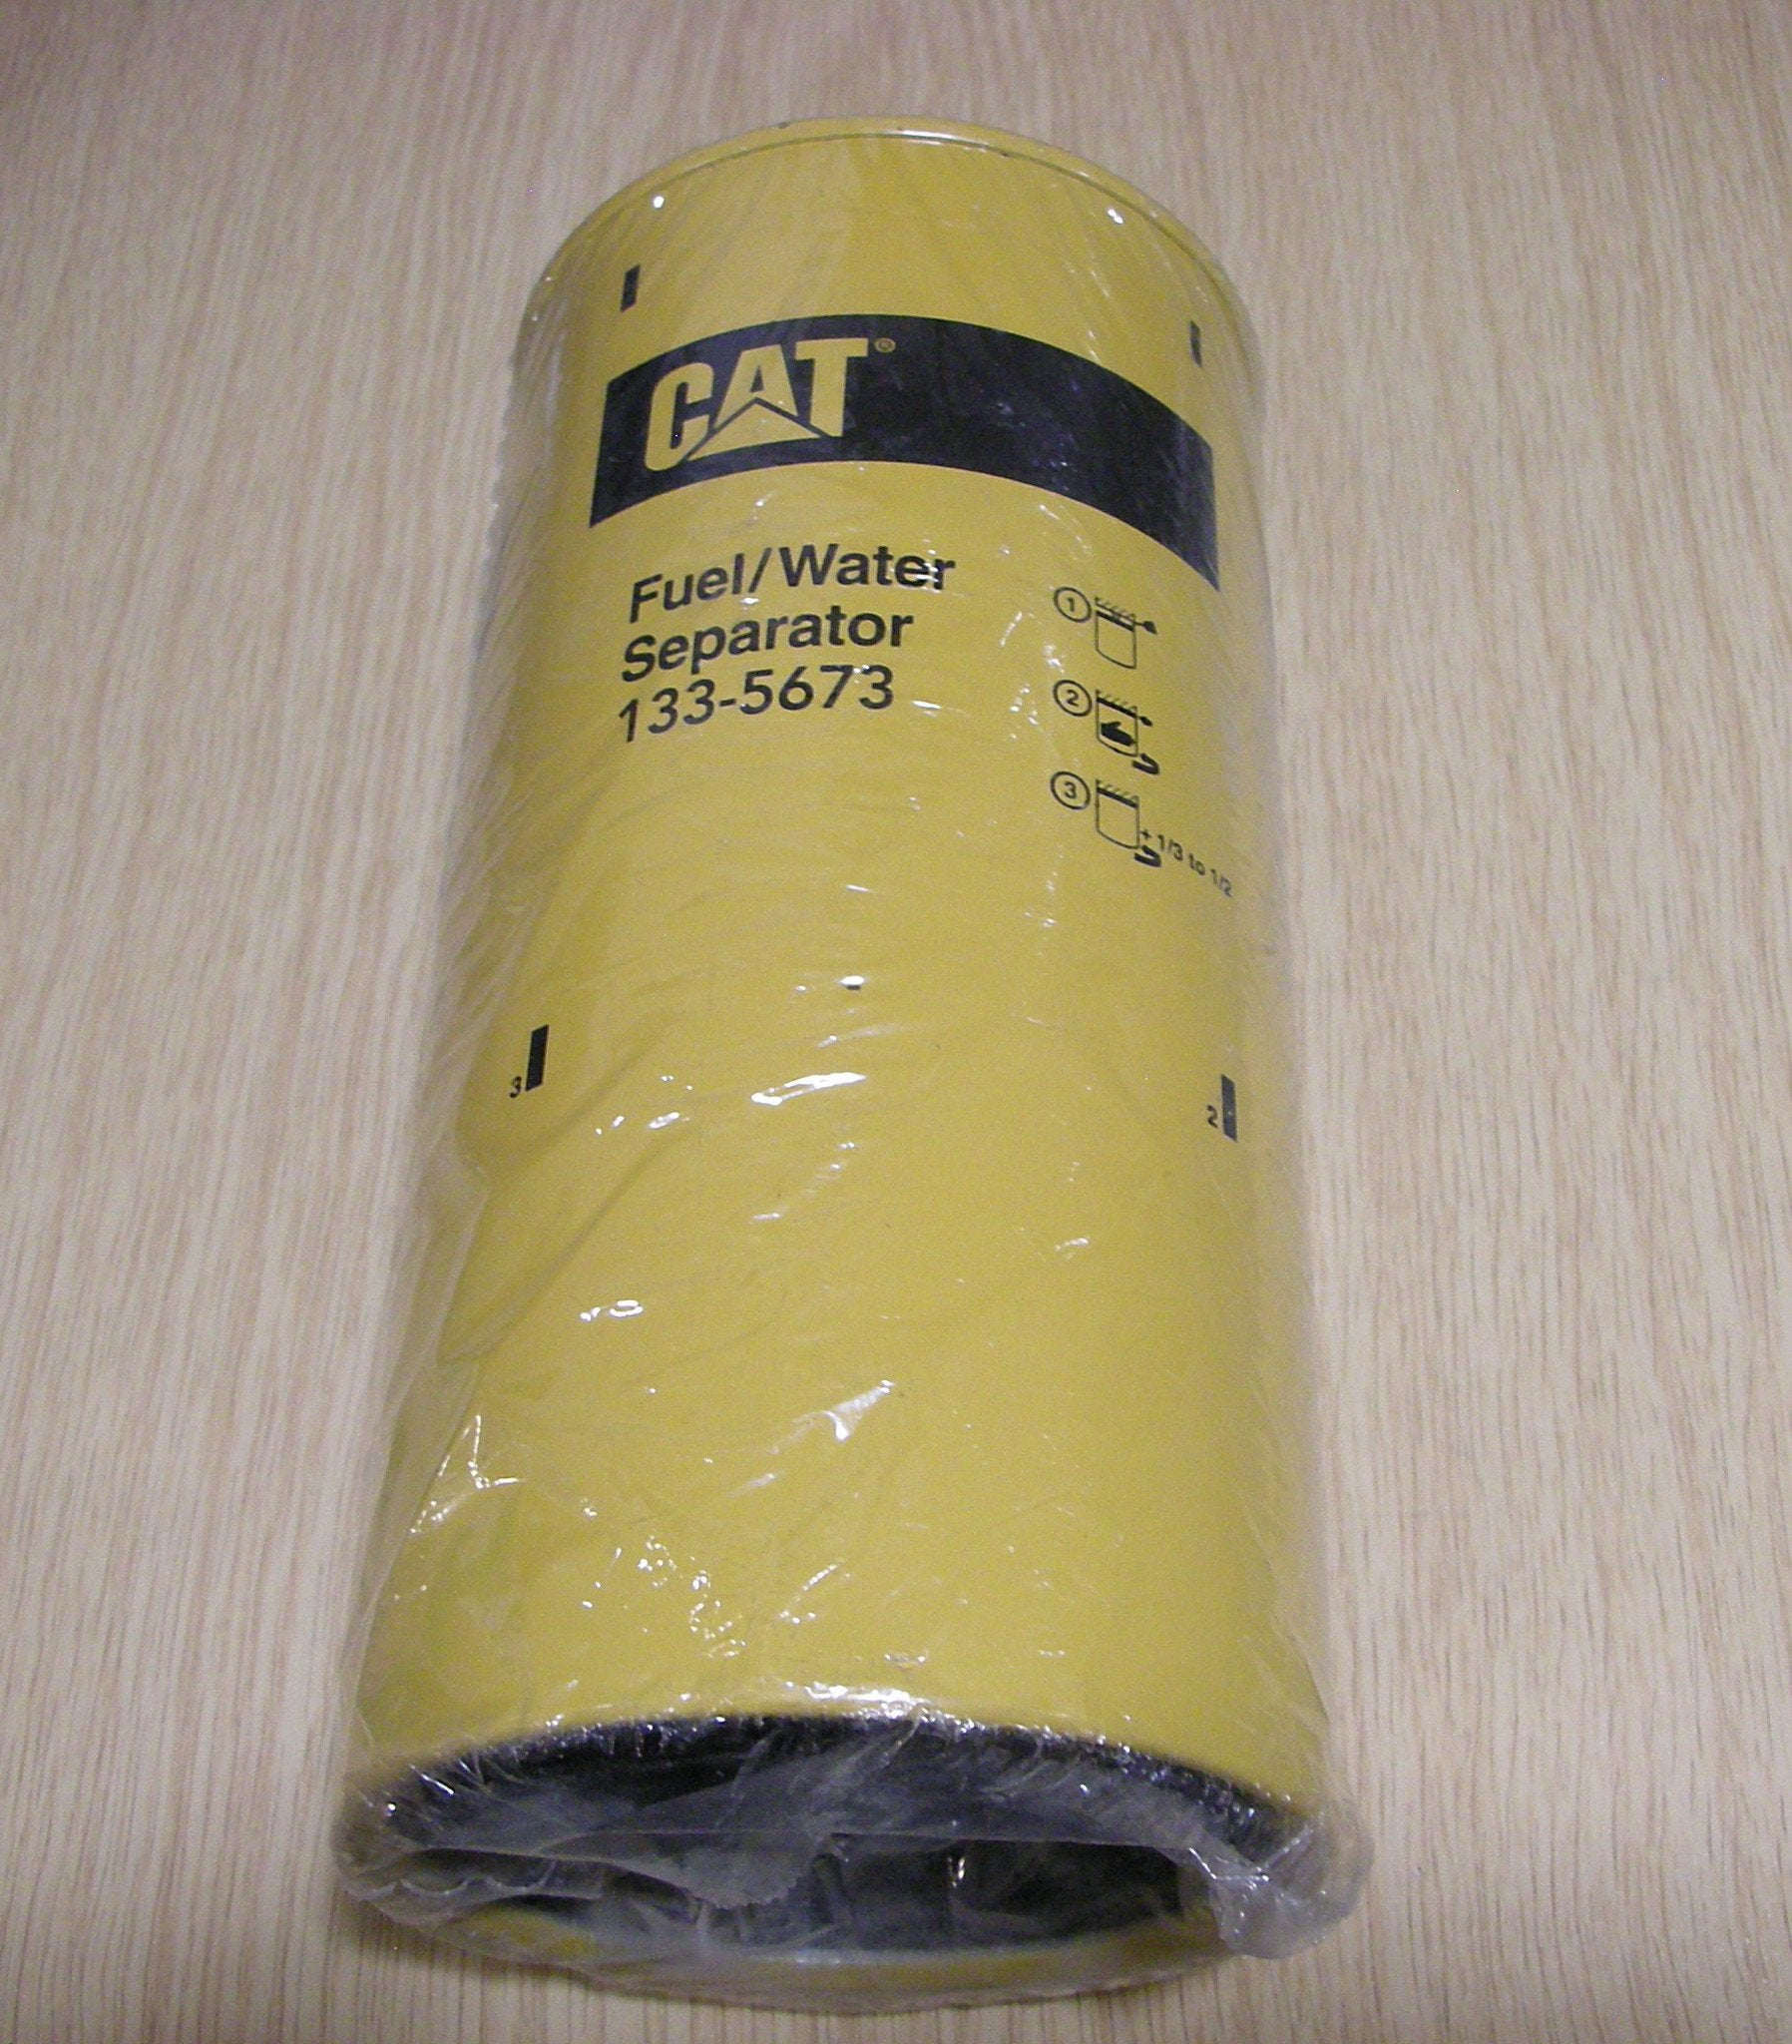 Cat Fuel Filter 133-5673 - BRM-SHOP.COM